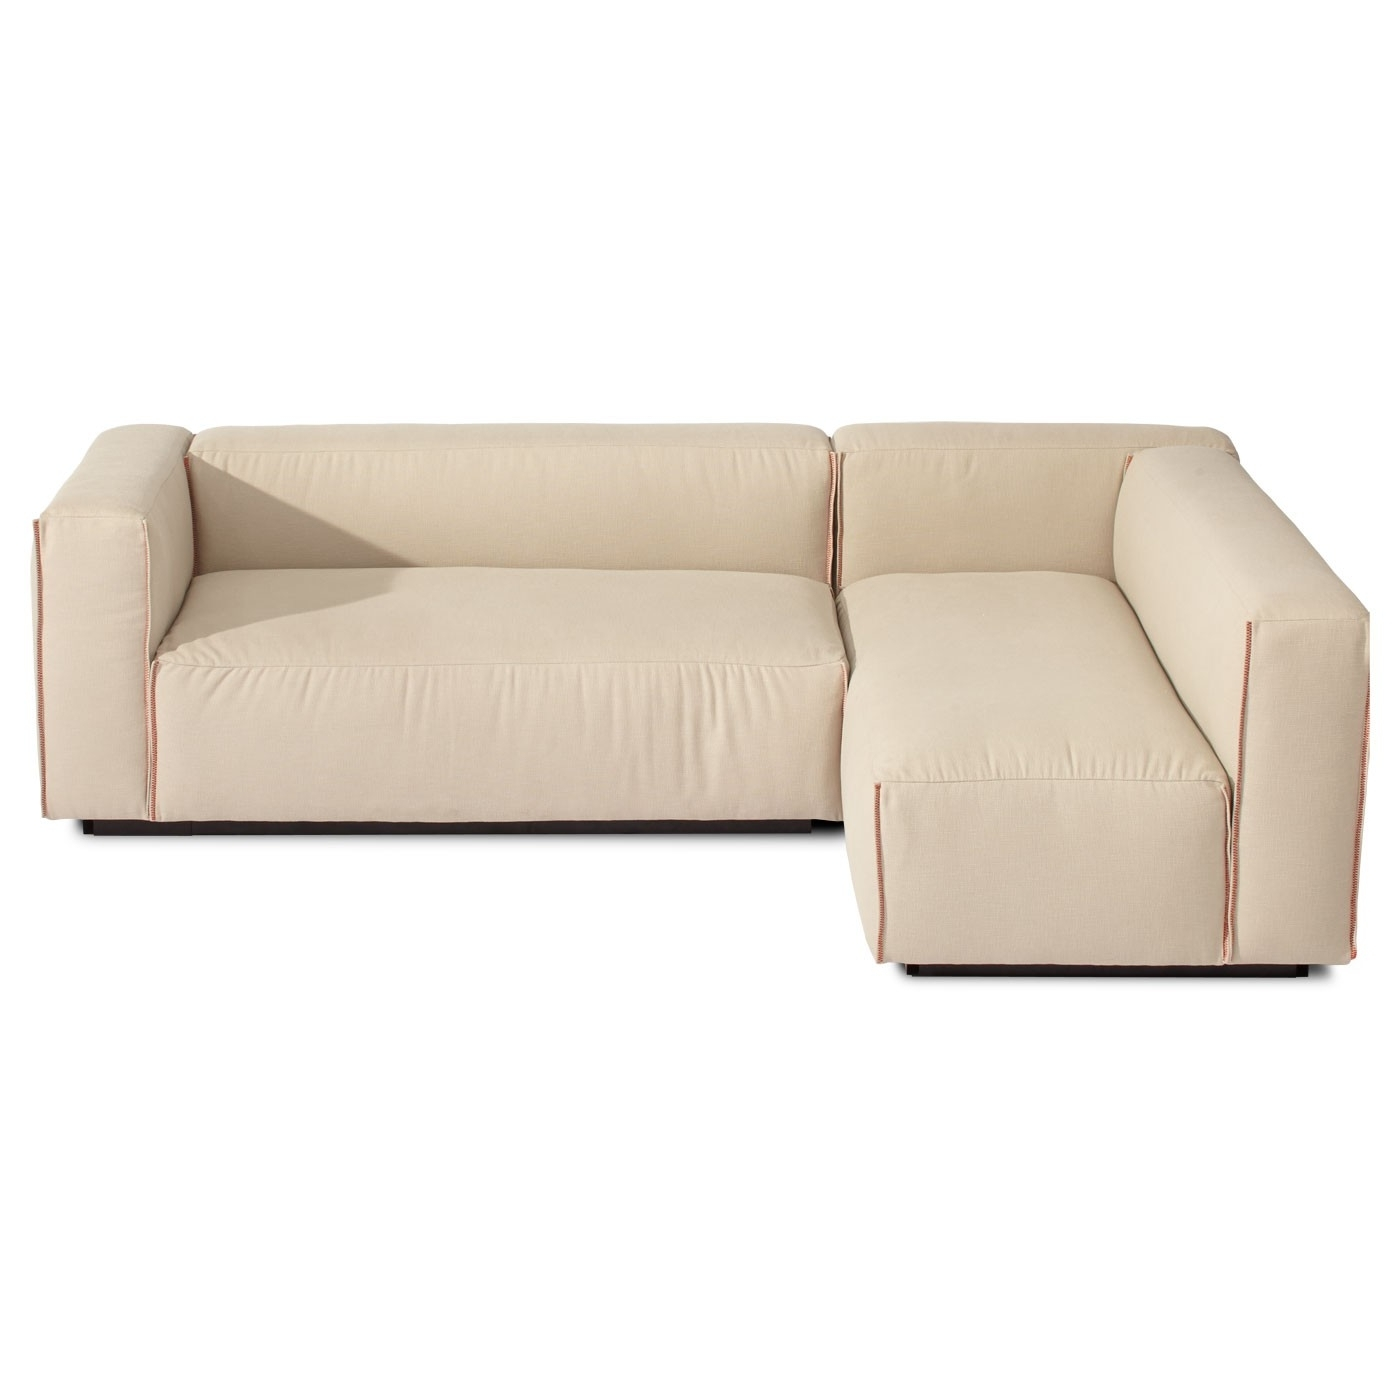 Most Recent Armless Sectional Sofas For Sectional Sofa Design: Elegant Small Modern Sectional Sofa (View 5 of 15)